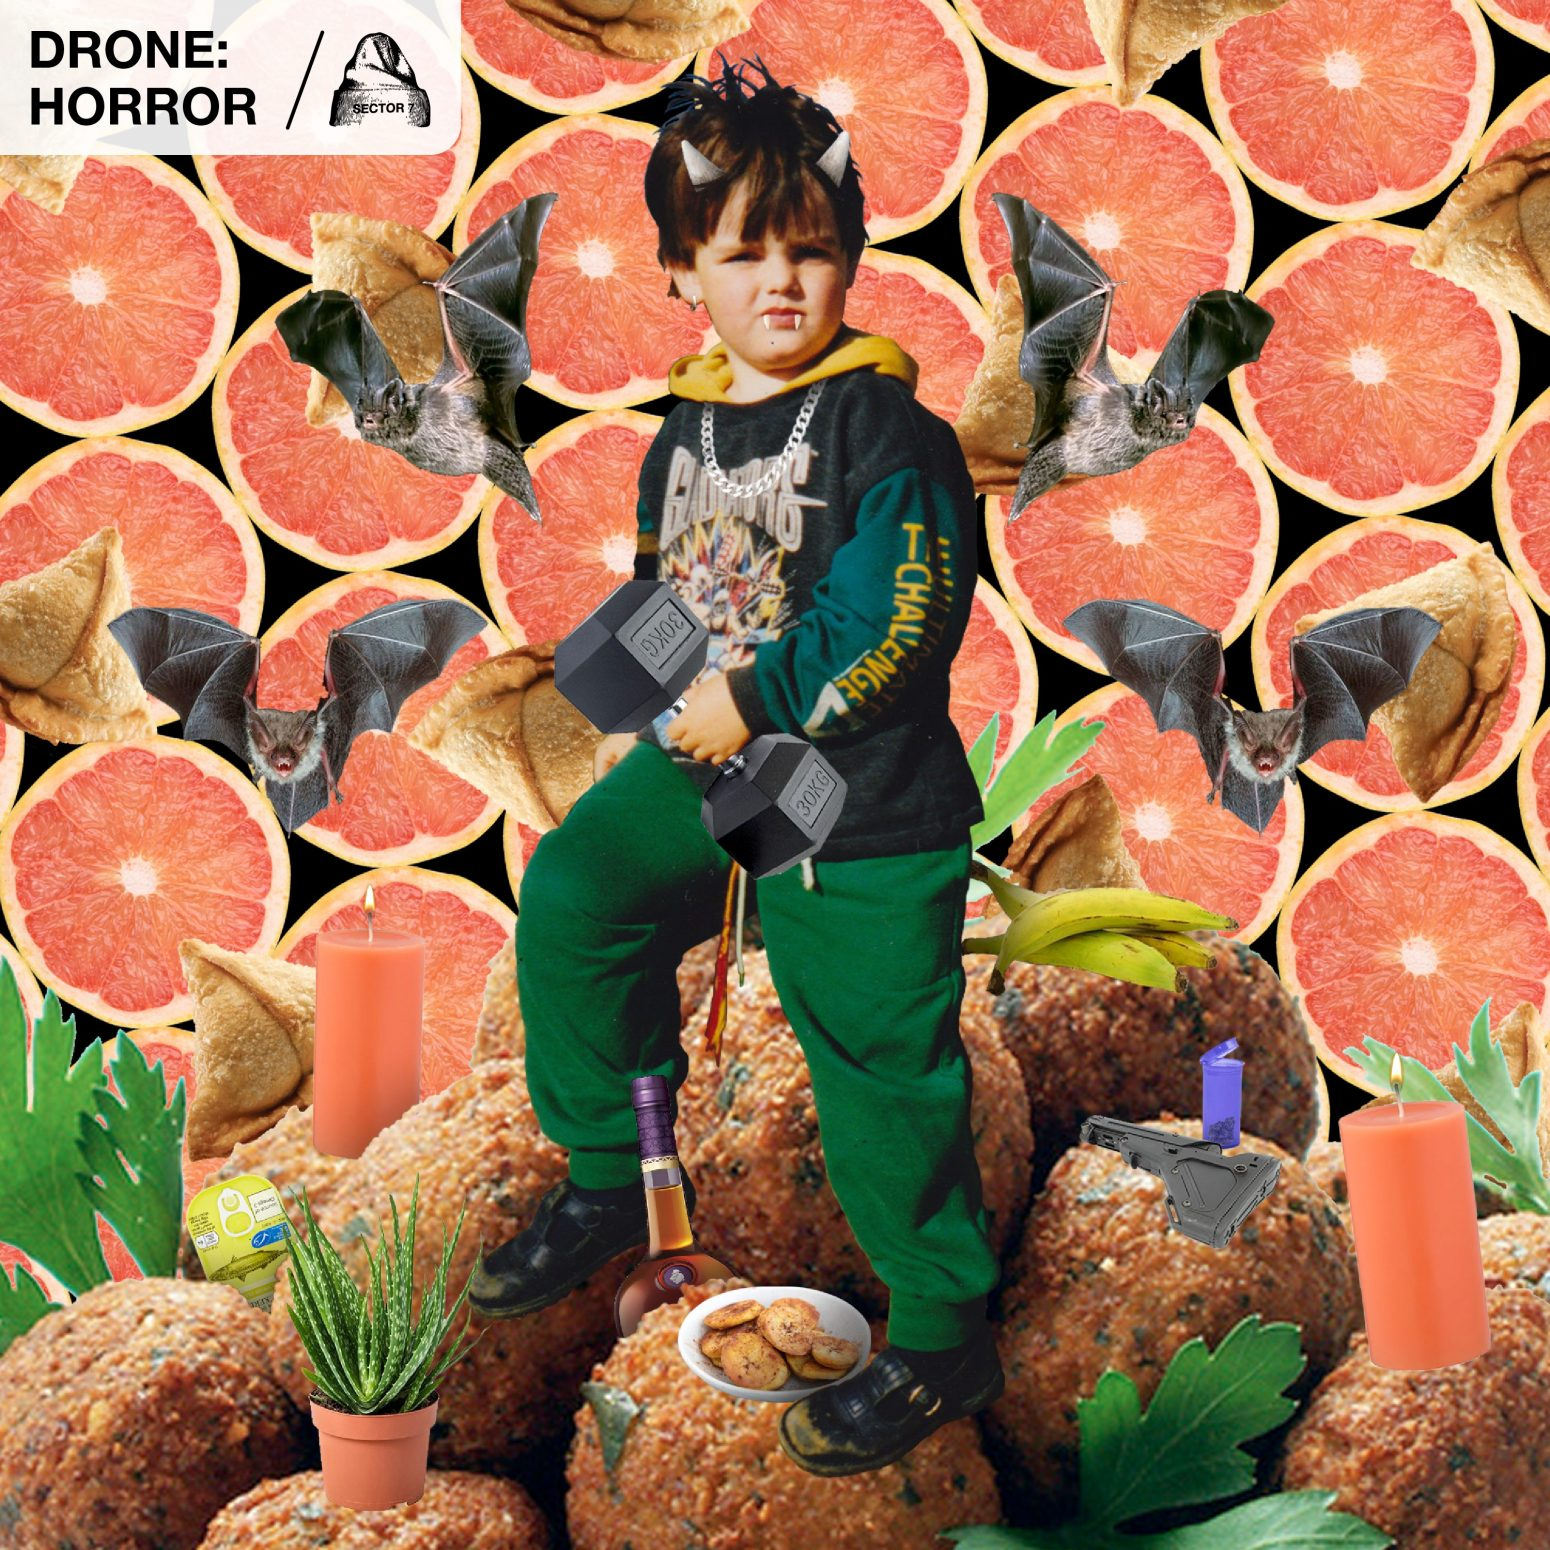 Drone - Horror